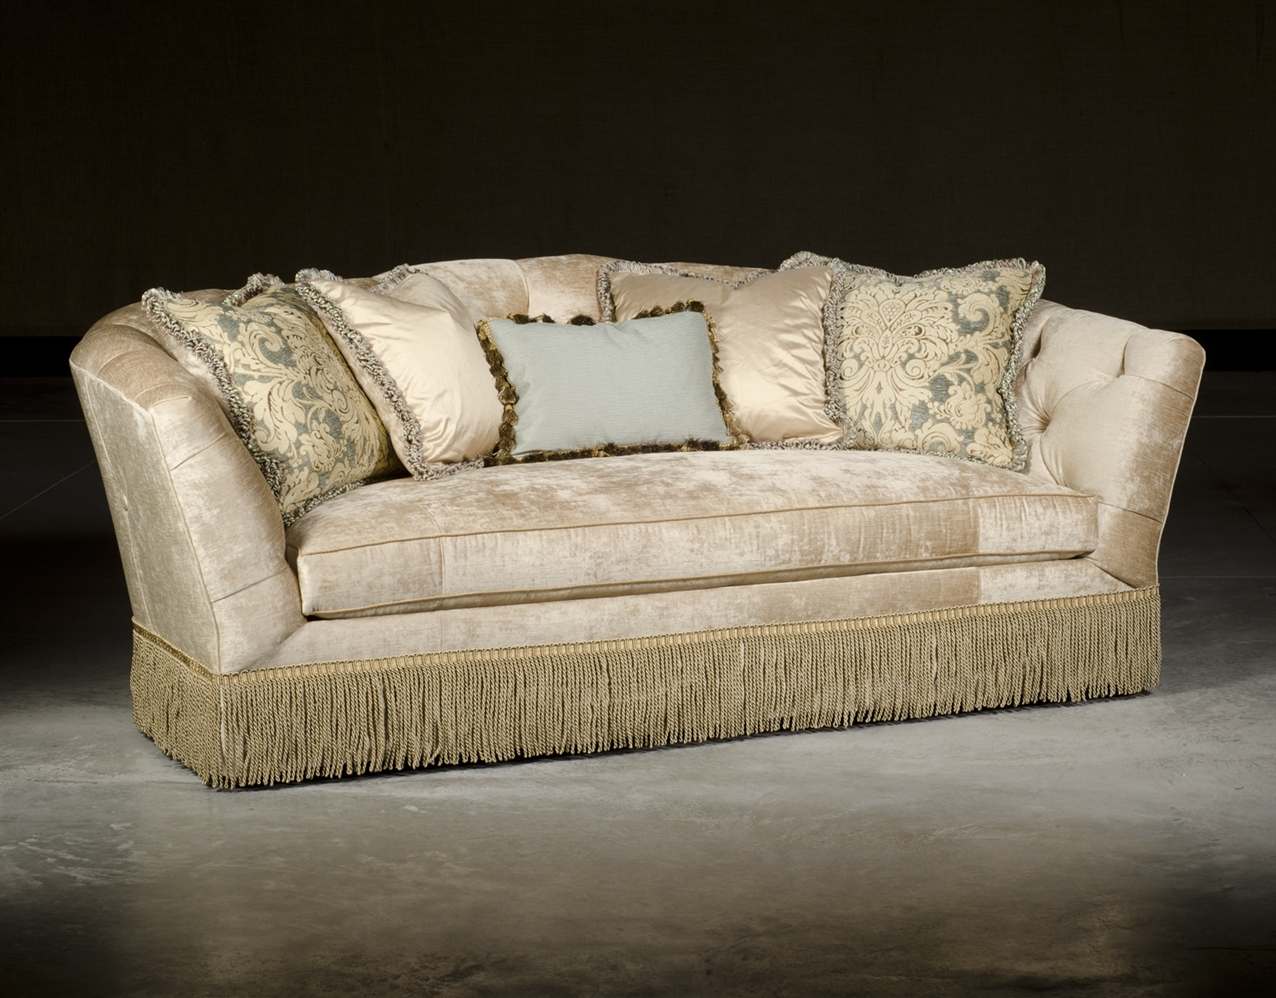 Traditional Style Sofas Traditional Style Sofa Luxury Upholstered Quality Furniture Thesofa